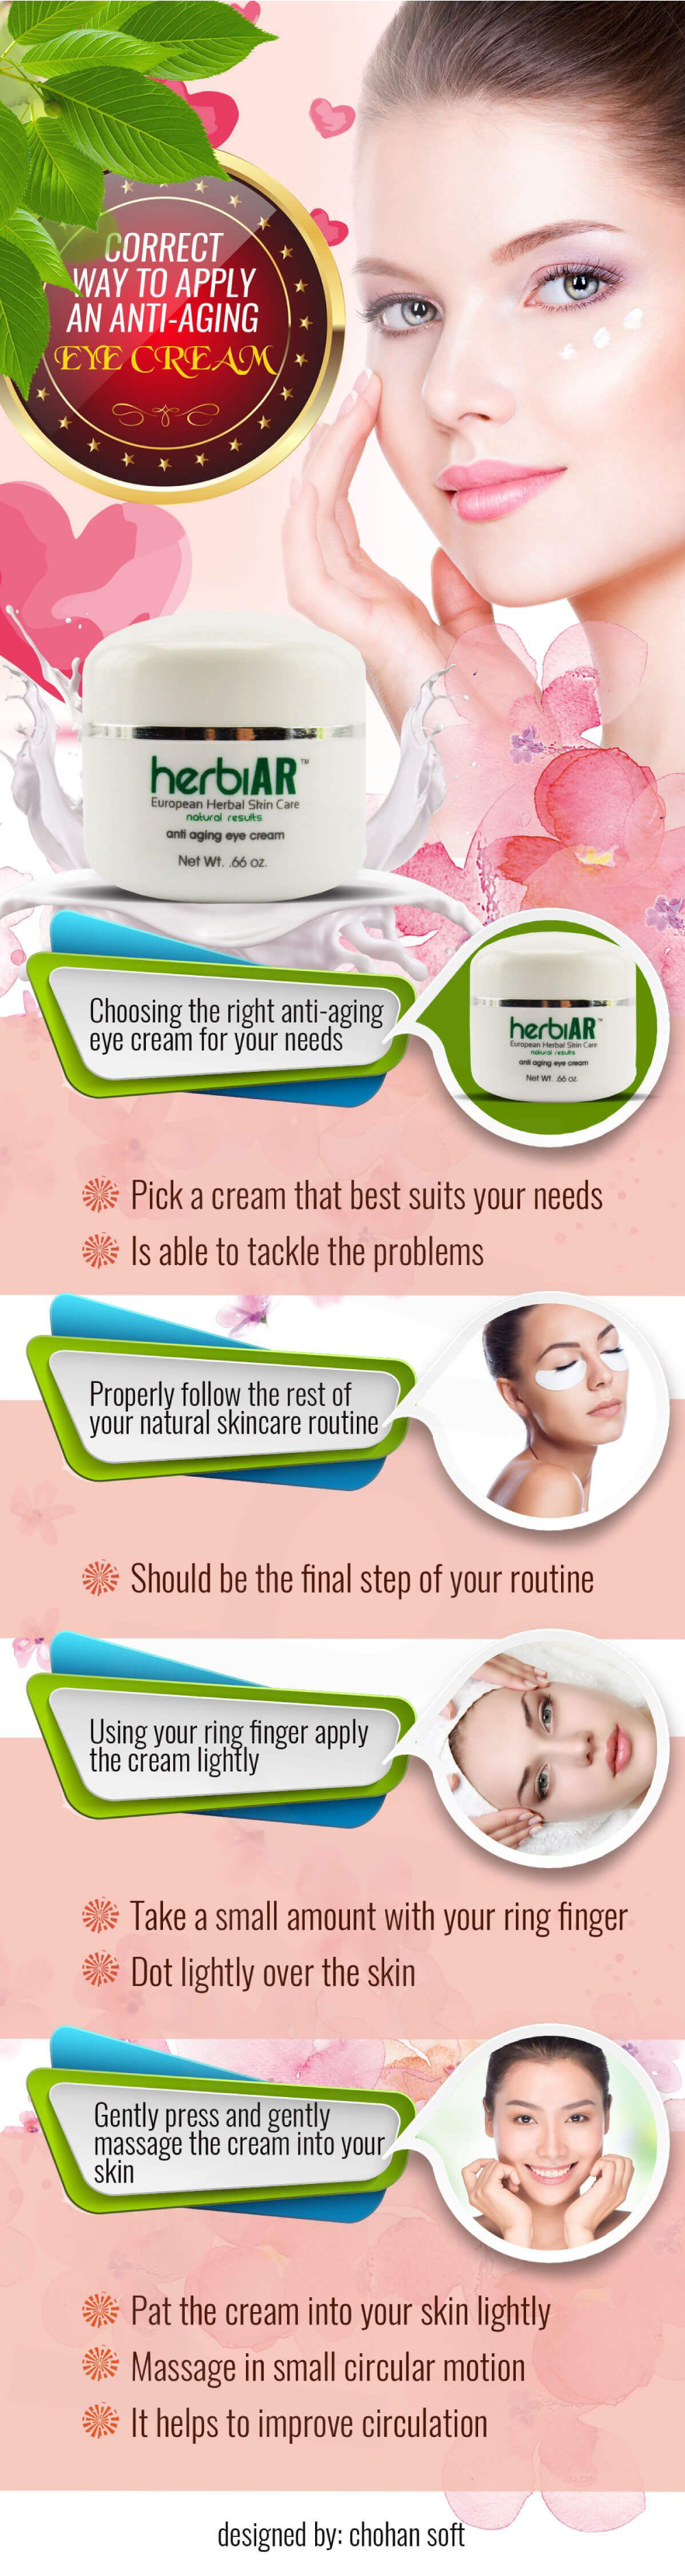 Apply Anti Aging Cream #organicmakeupinfographic